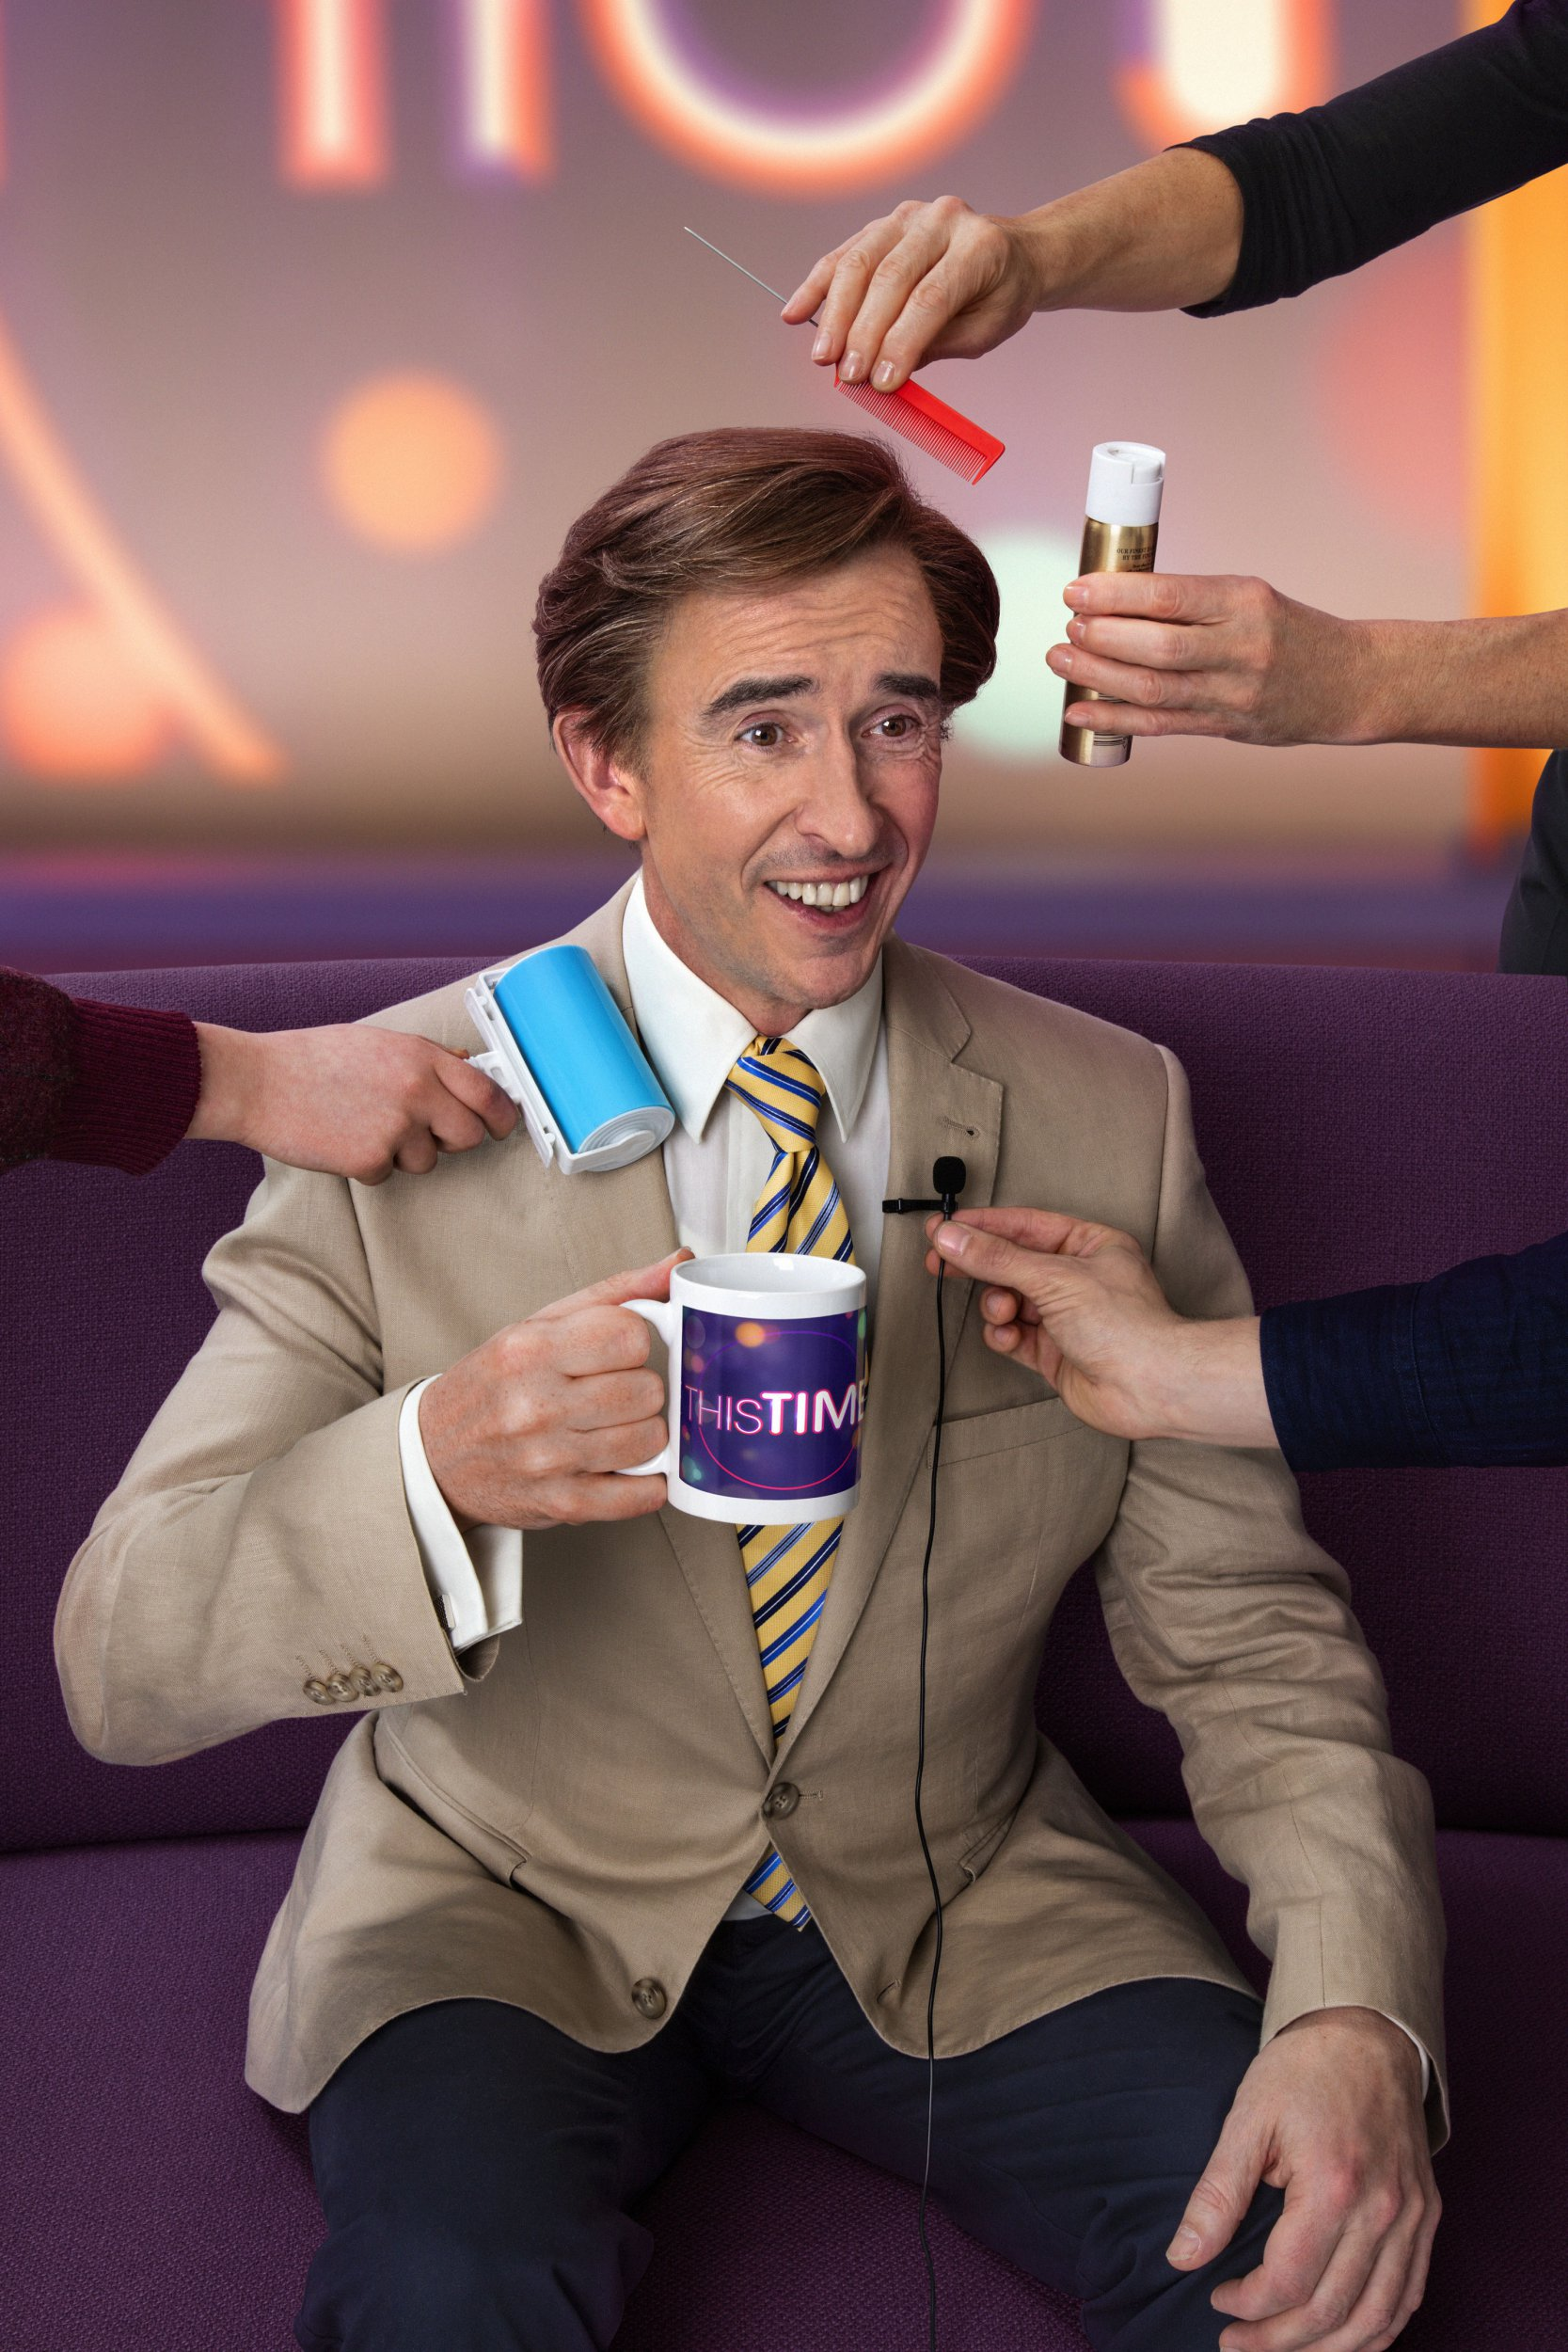 The nation has gone Alan Partridge mad as British comedians celebrate 'genius' return